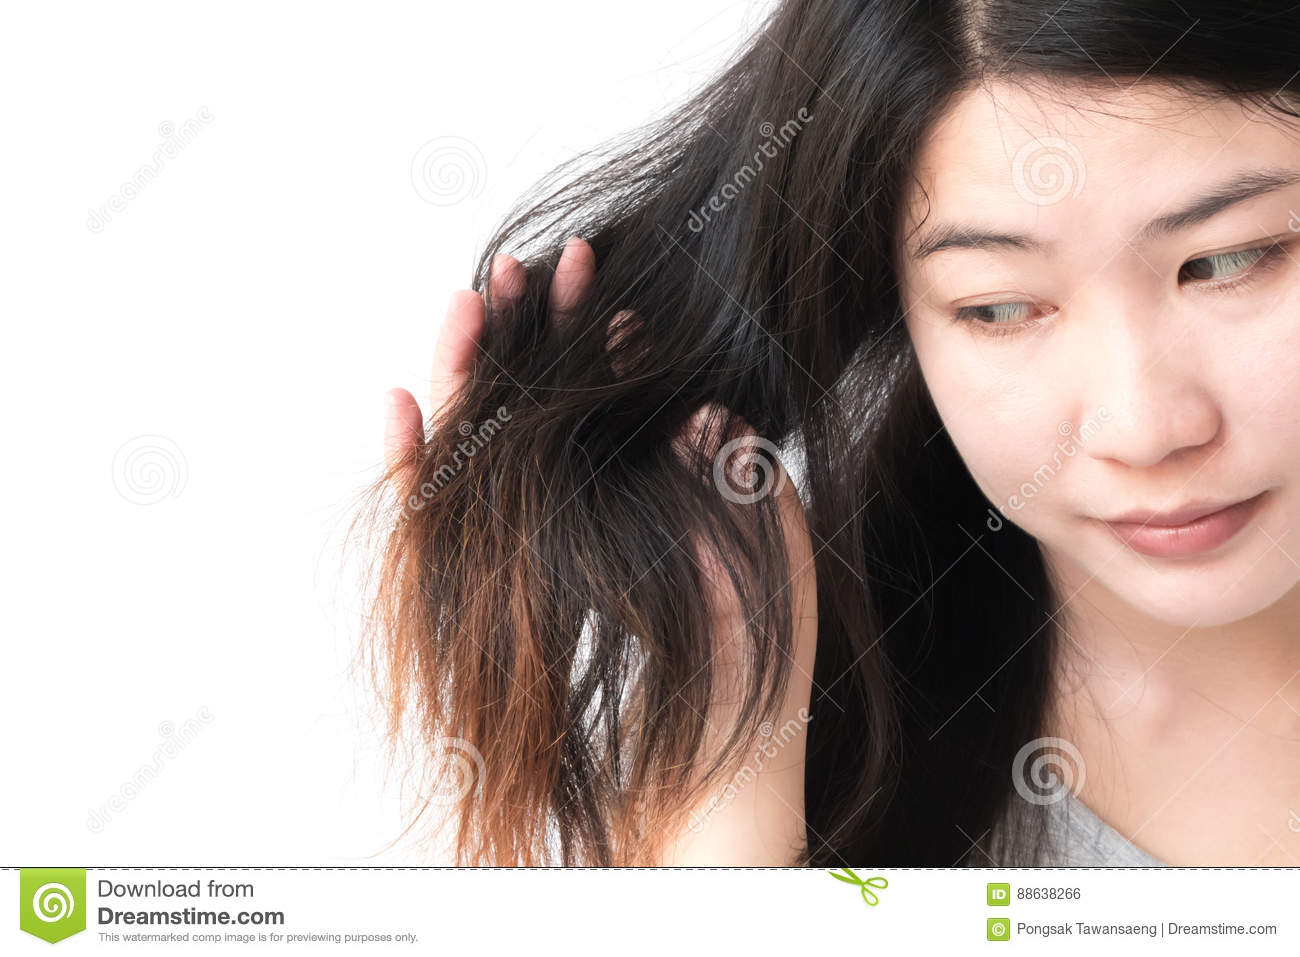 Woman serious damaged hair problem for health care shampoo and beauty product concept